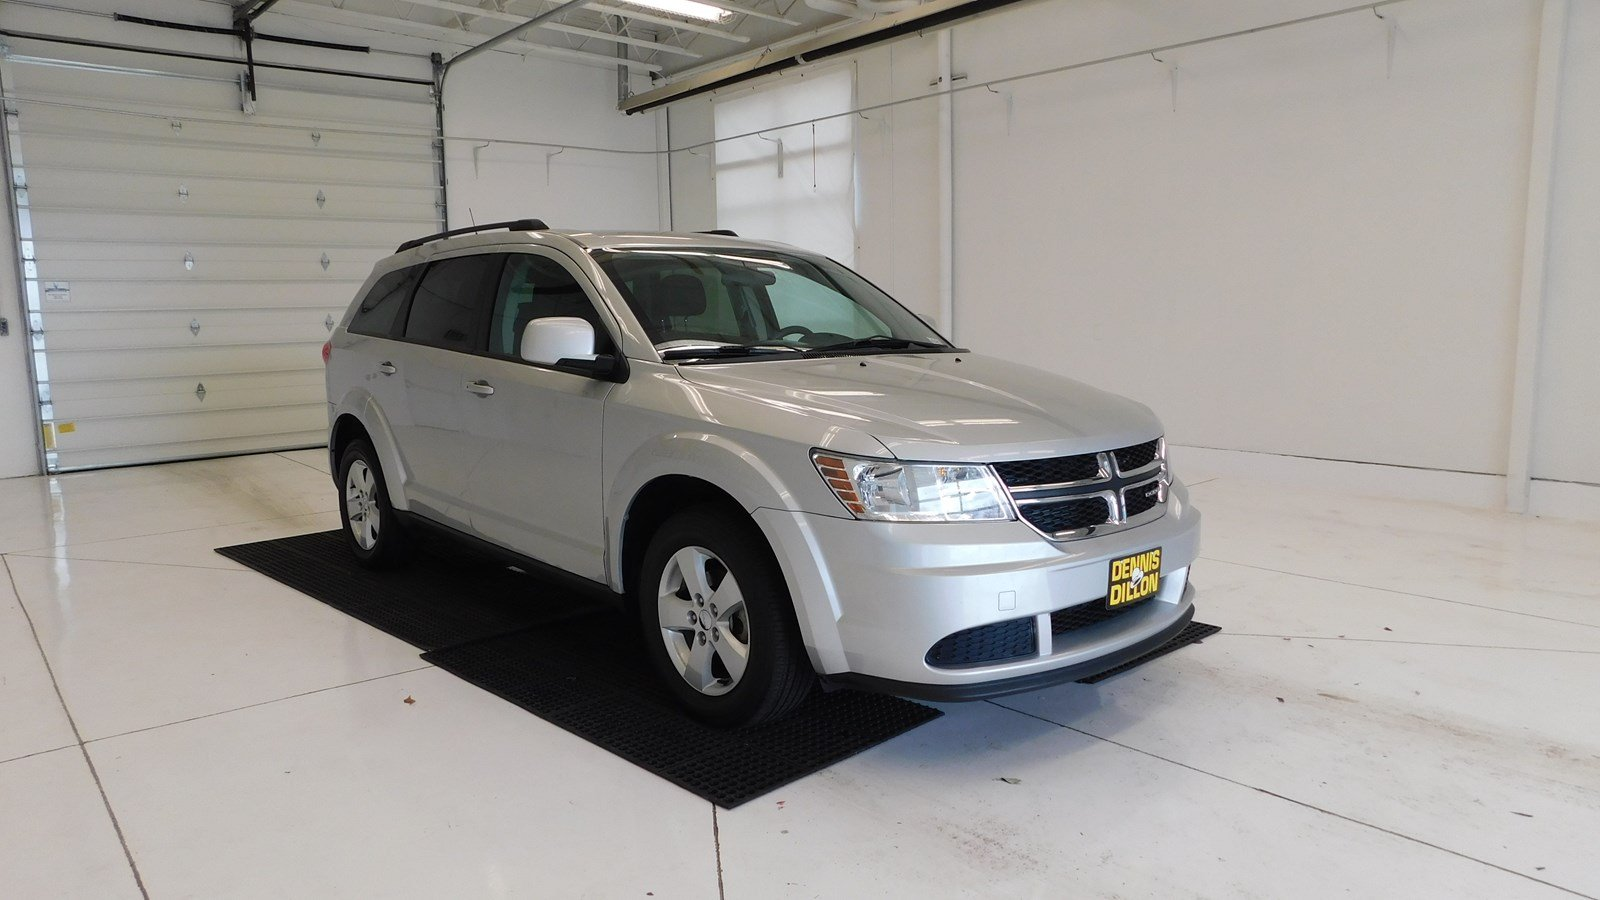 Dennis Dillon Dodge >> Pre Owned 2011 Dodge Journey Mainstreet Awd